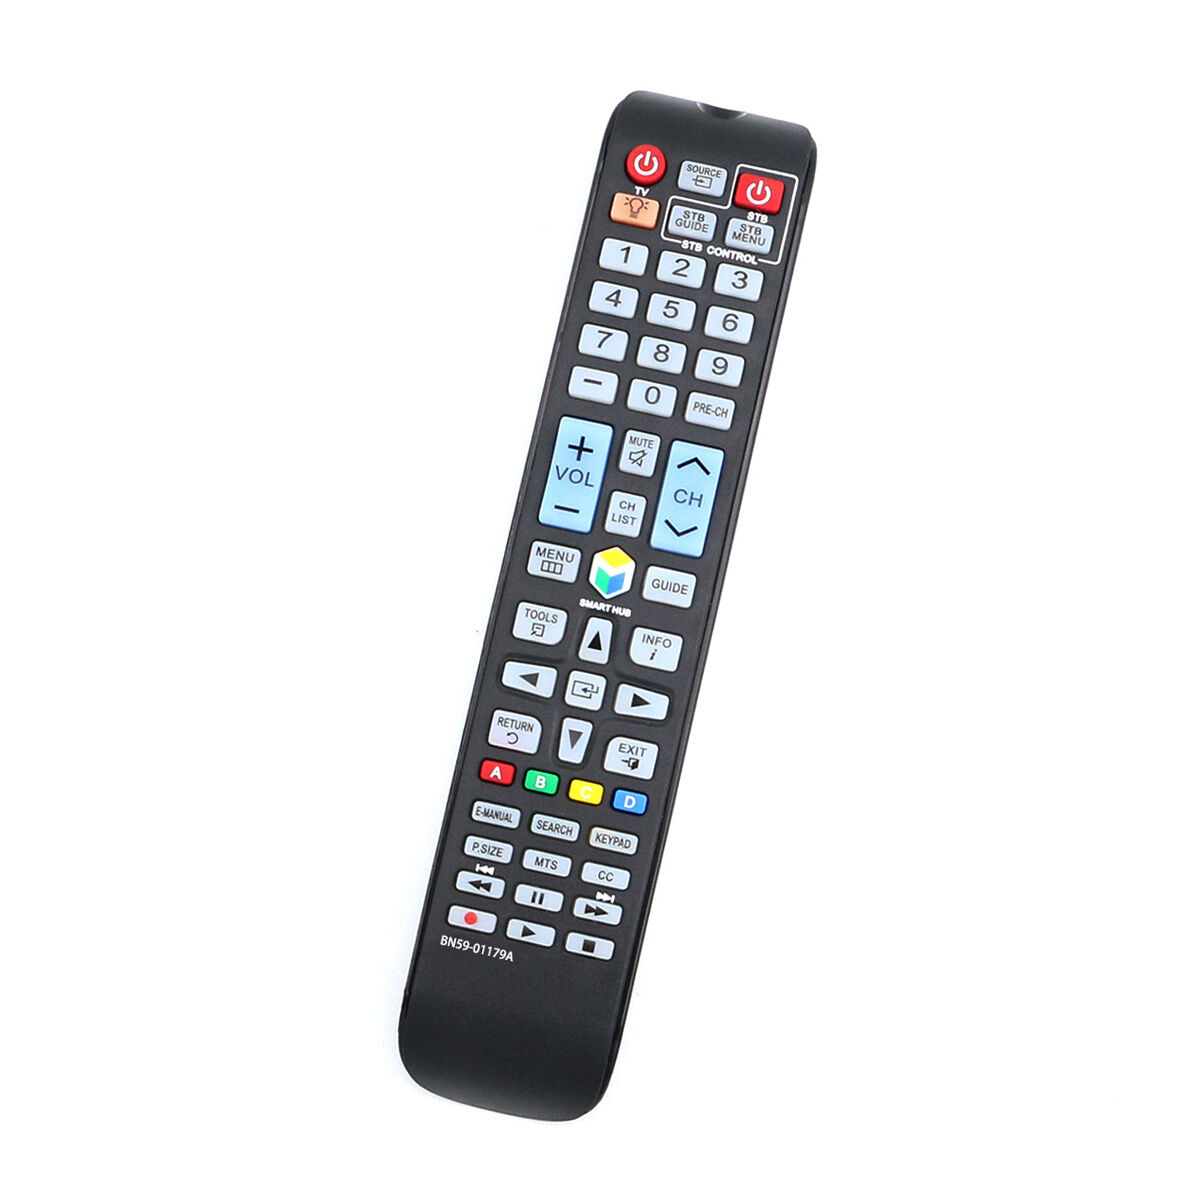 US BN59-01179A New Replacement Remote Control For SAMSUNG